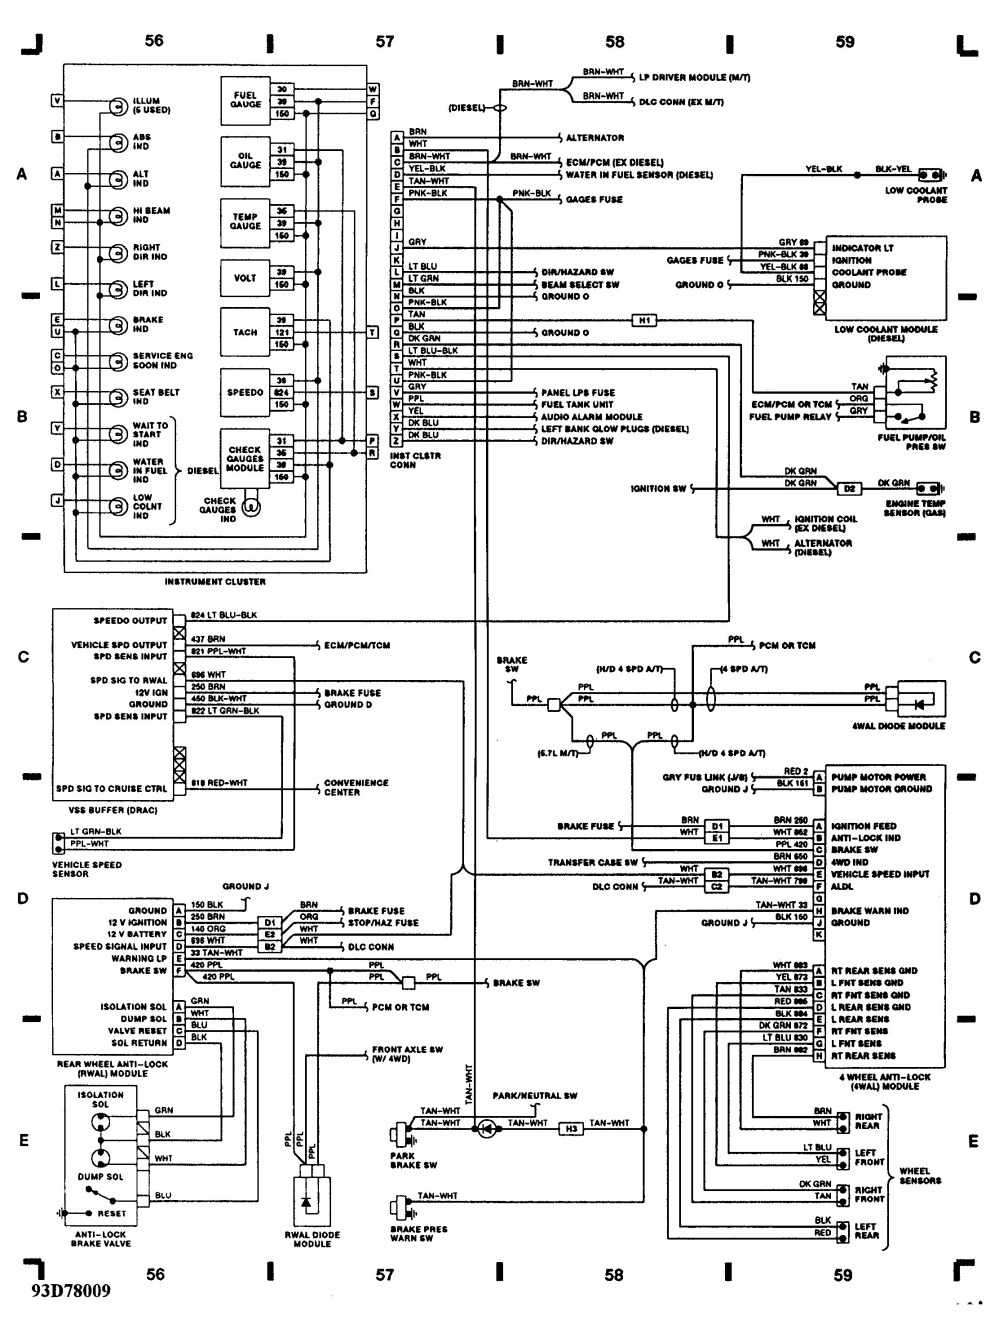 medium resolution of home 1997 chevy s10 pickup diagram for spark plug and coil wire 1997 chevy blazer engine diagram 1997 chevy s10 engine diagram